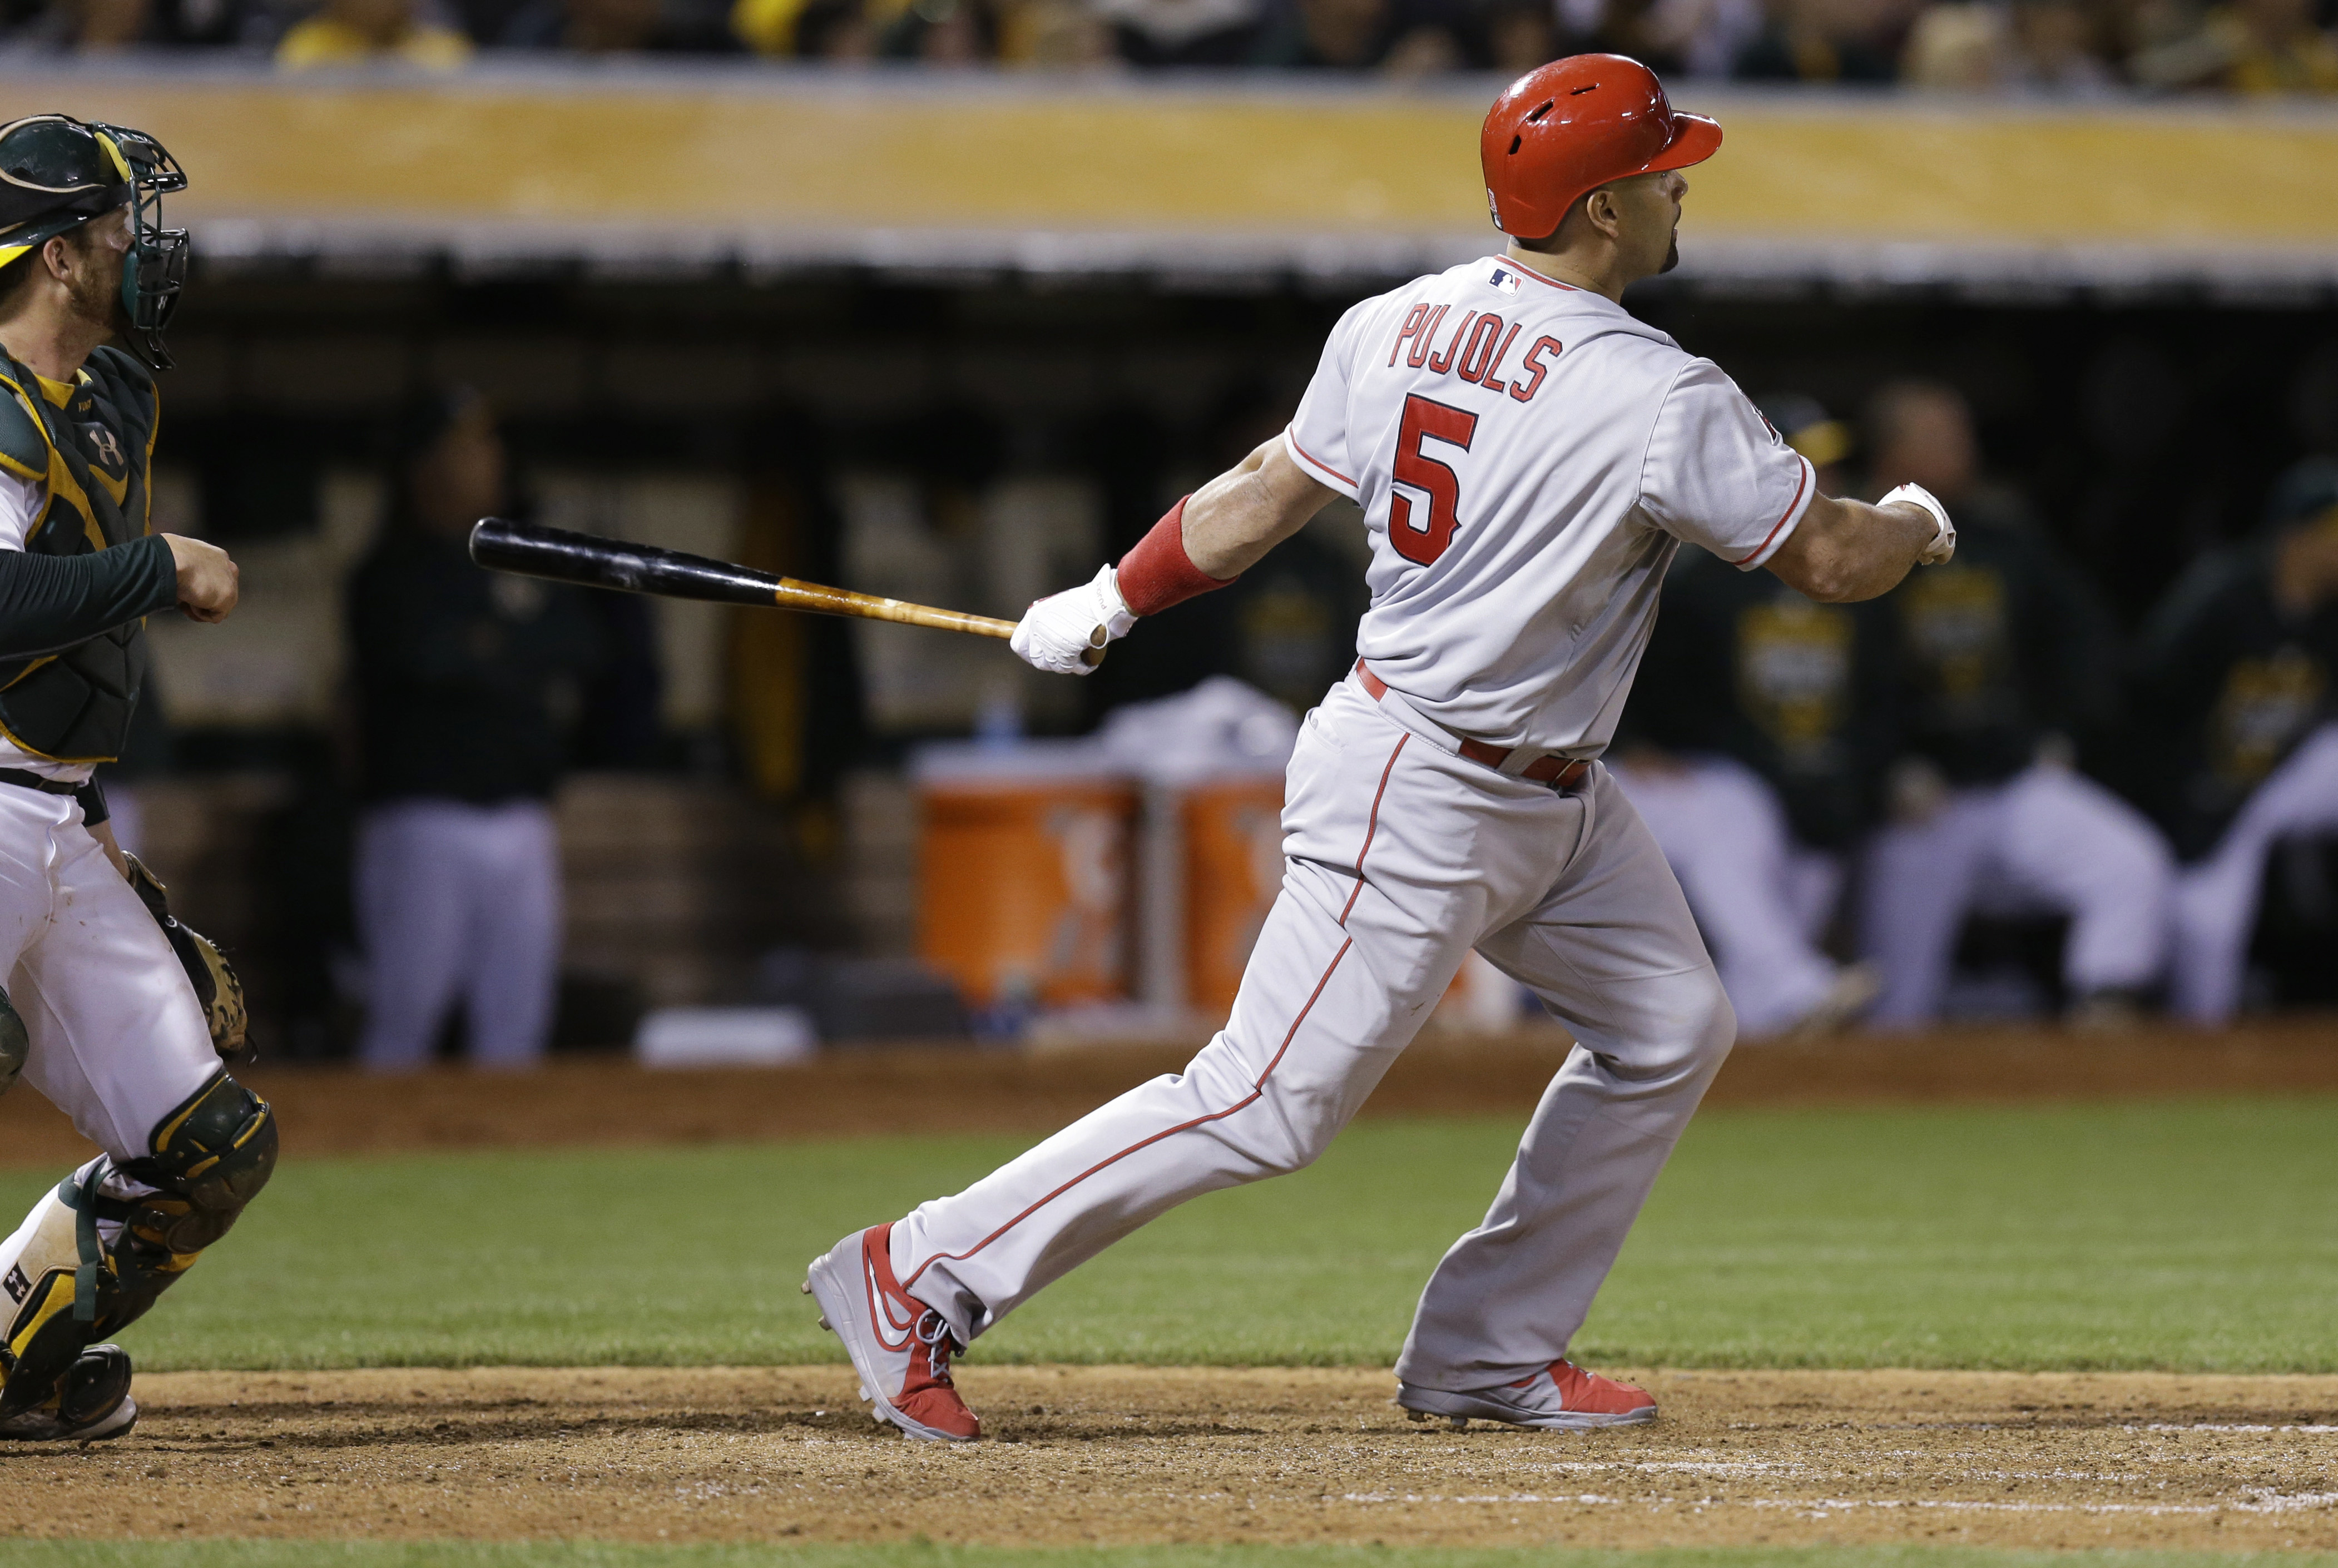 Los Angeles Angels' Albert Pujols watches his grand slam off Oakland Athletics' Edward Mujica during the seventh inning of a baseball game Friday, June 19, 2015, in Oakland, Calif. (AP Photo/Ben Margot)